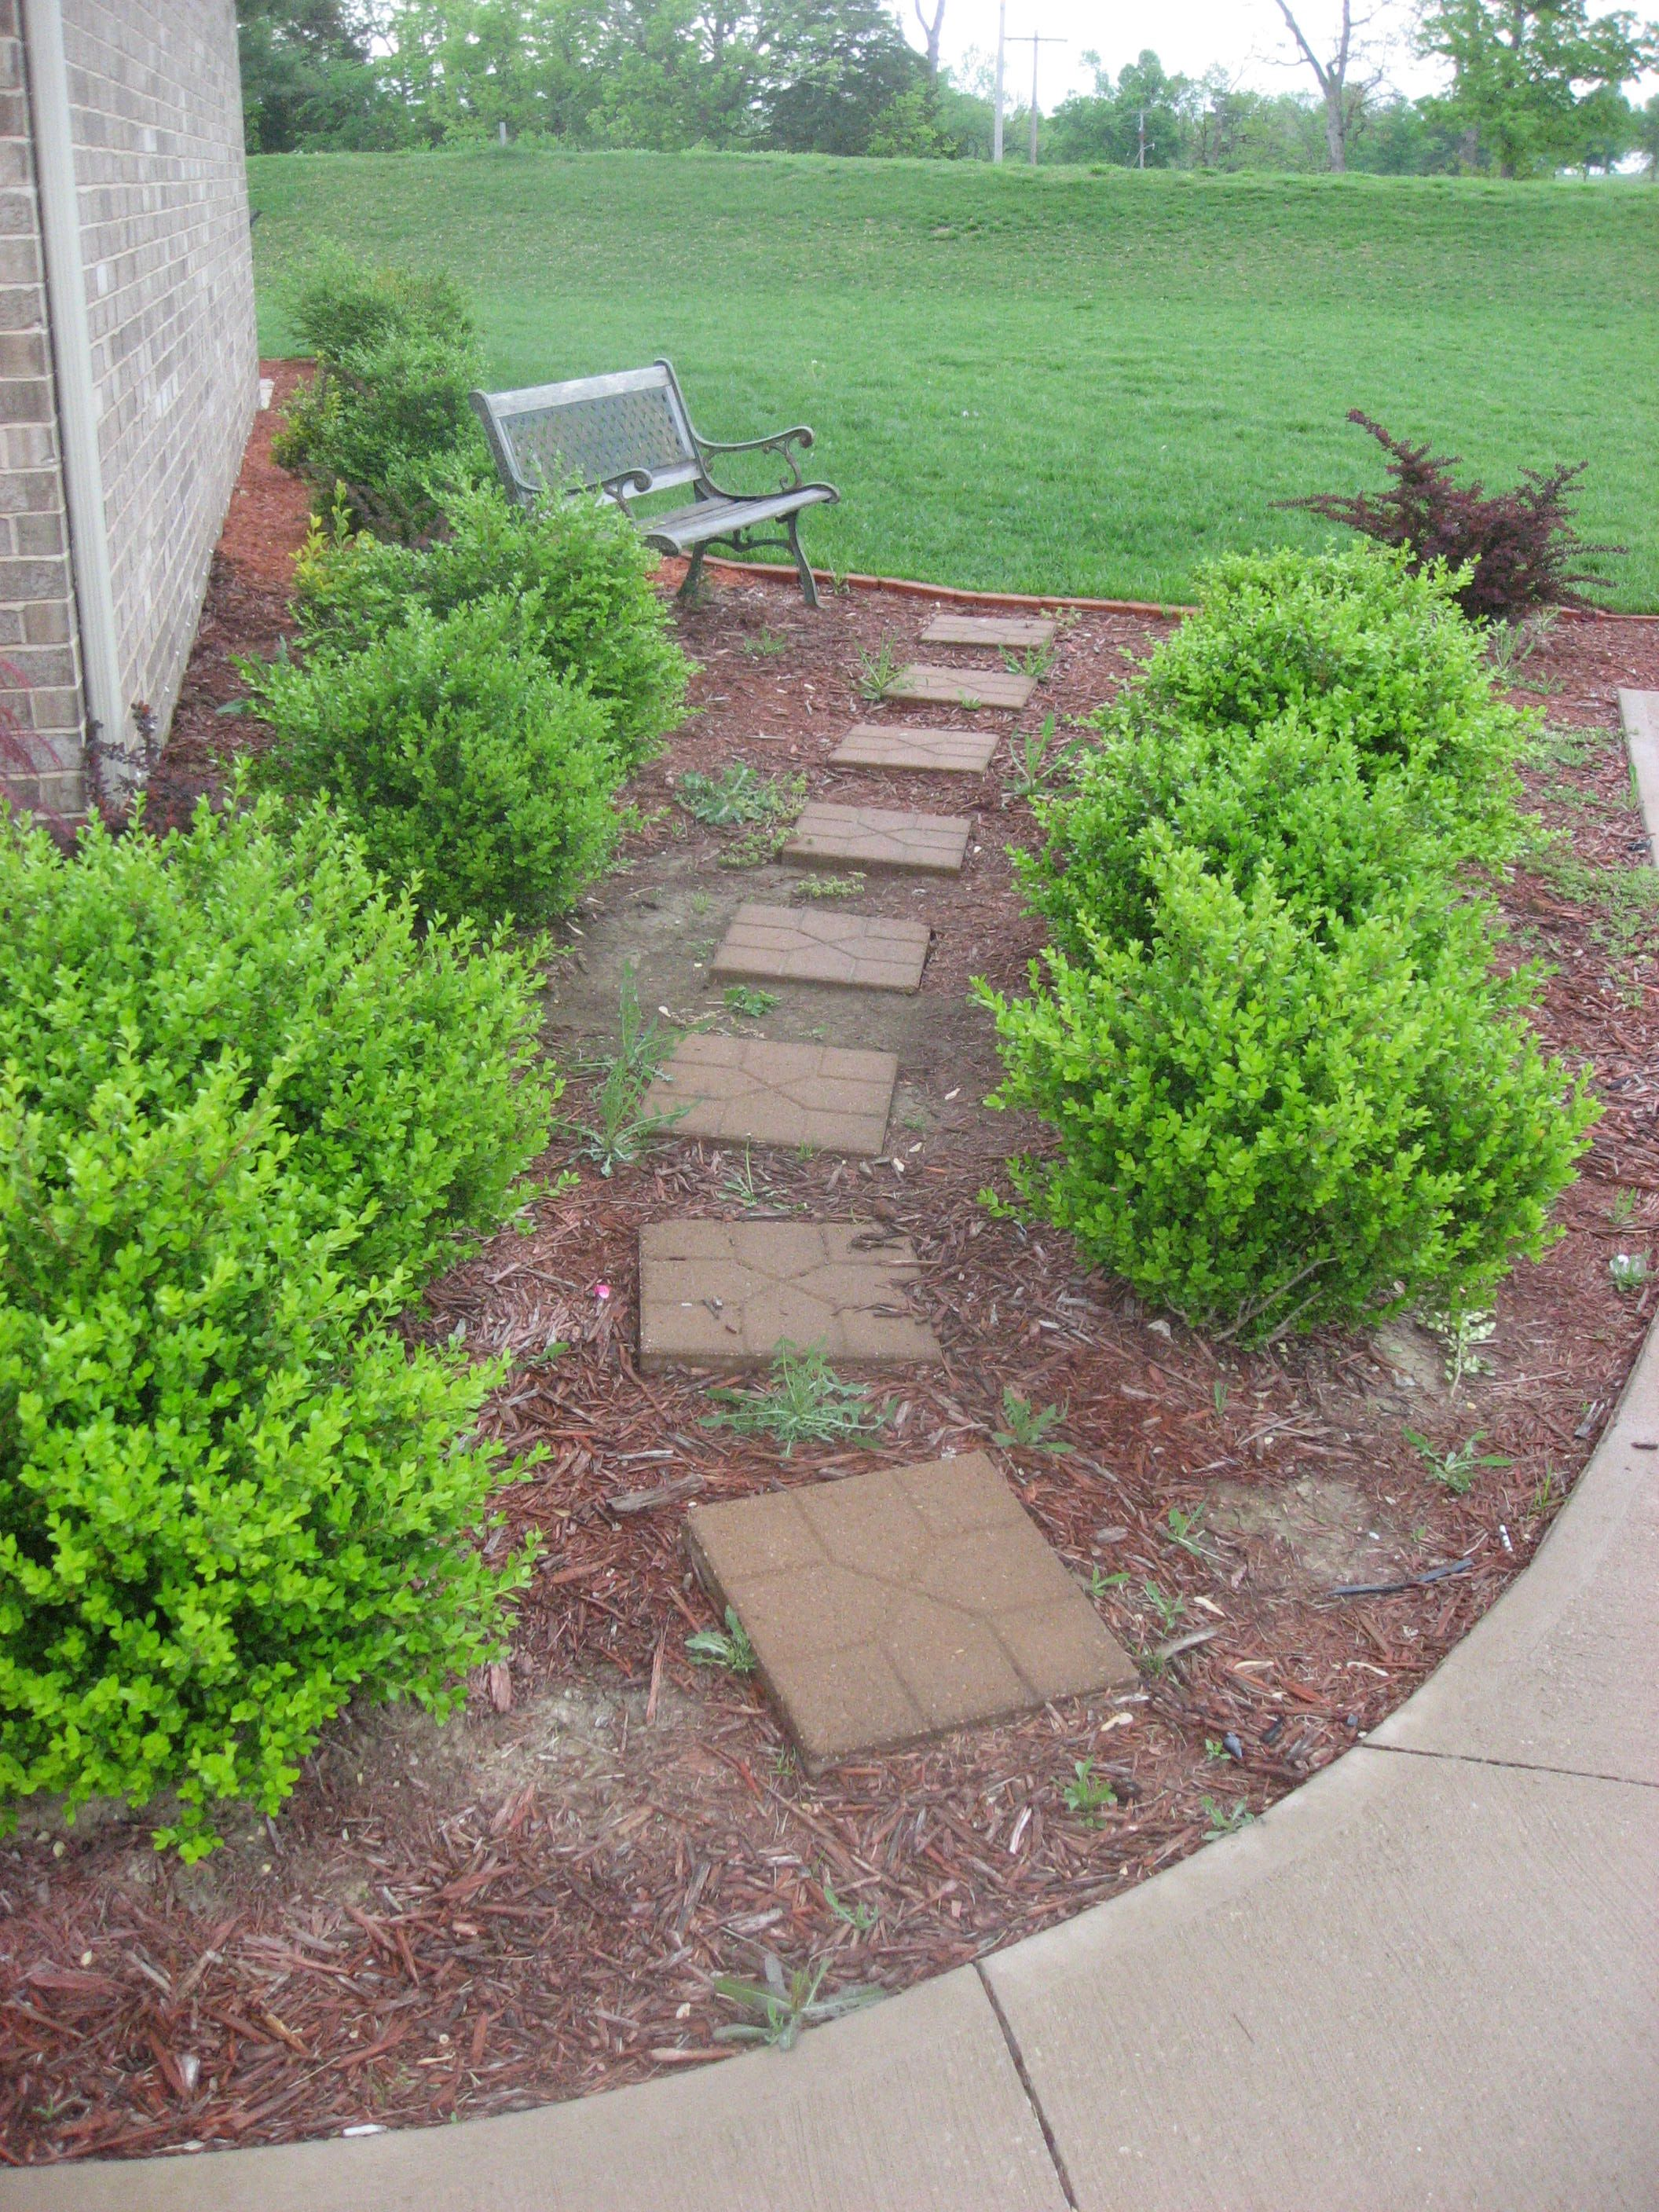 Garden-friendly pavers are a perfect outdoor DIY project for spring.